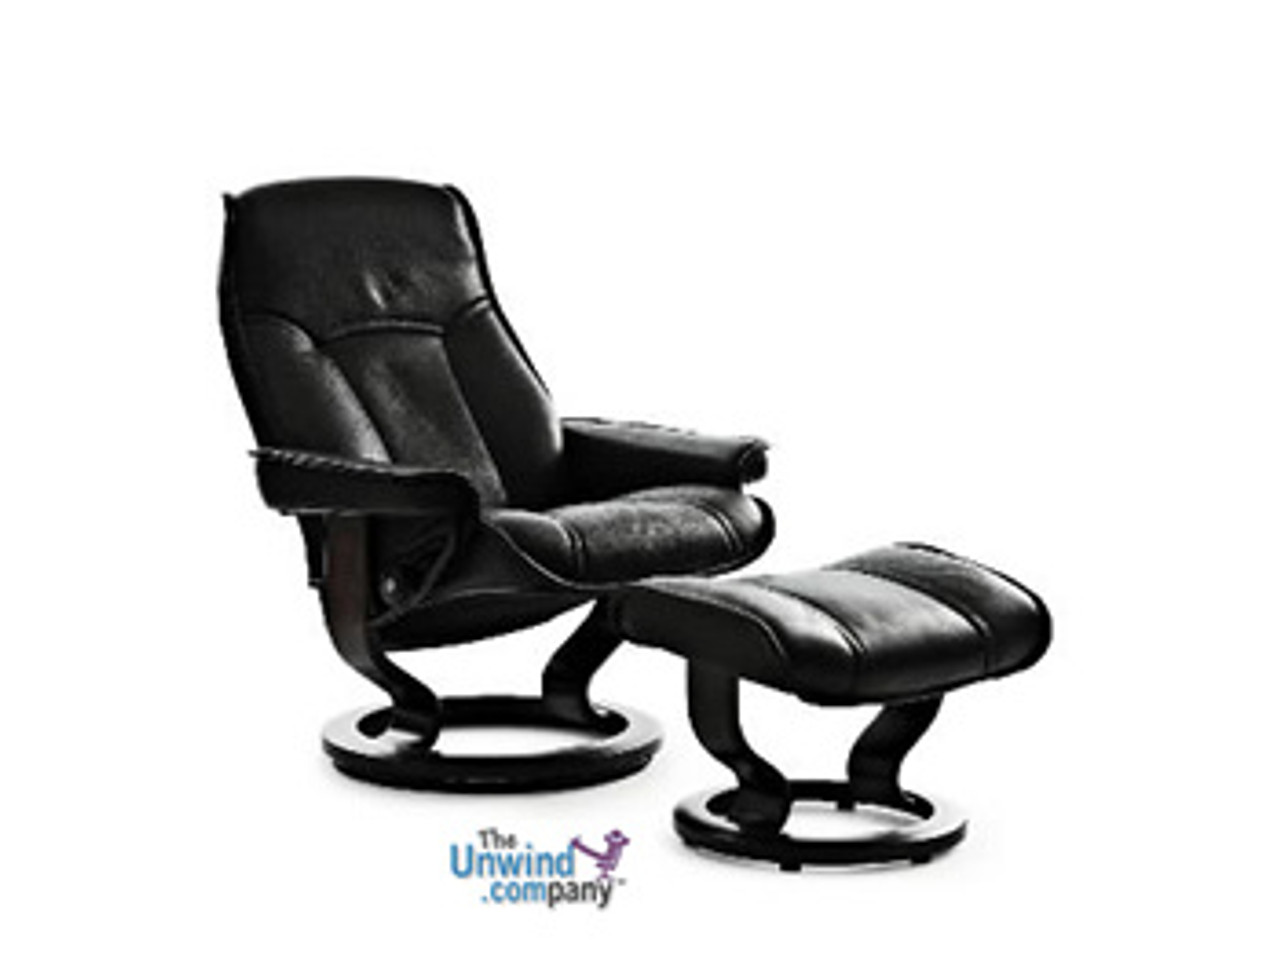 Prime Ekornes Stressless Senator Recliner With Ottoman Ships Fast Call For Special Pricing Gmtry Best Dining Table And Chair Ideas Images Gmtryco